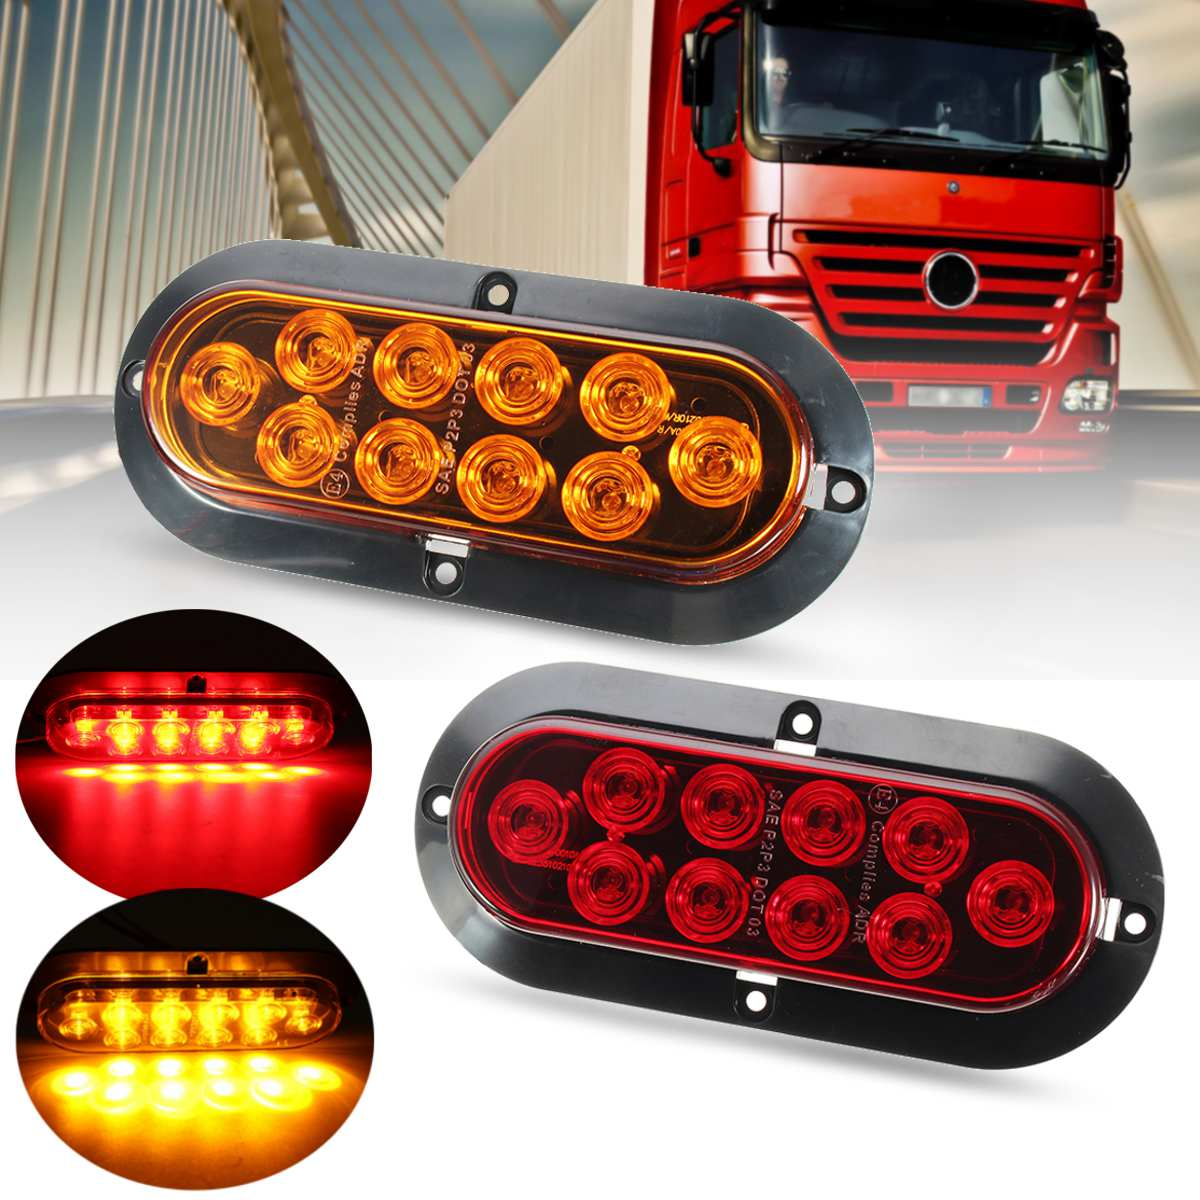 Truck trailer 10 led 6 oval amber red surface mount turn signal truck trailer 10 led 6 oval amber red surface mount turn signal stop tail light in car light assembly from automobiles motorcycles on aliexpress aloadofball Image collections